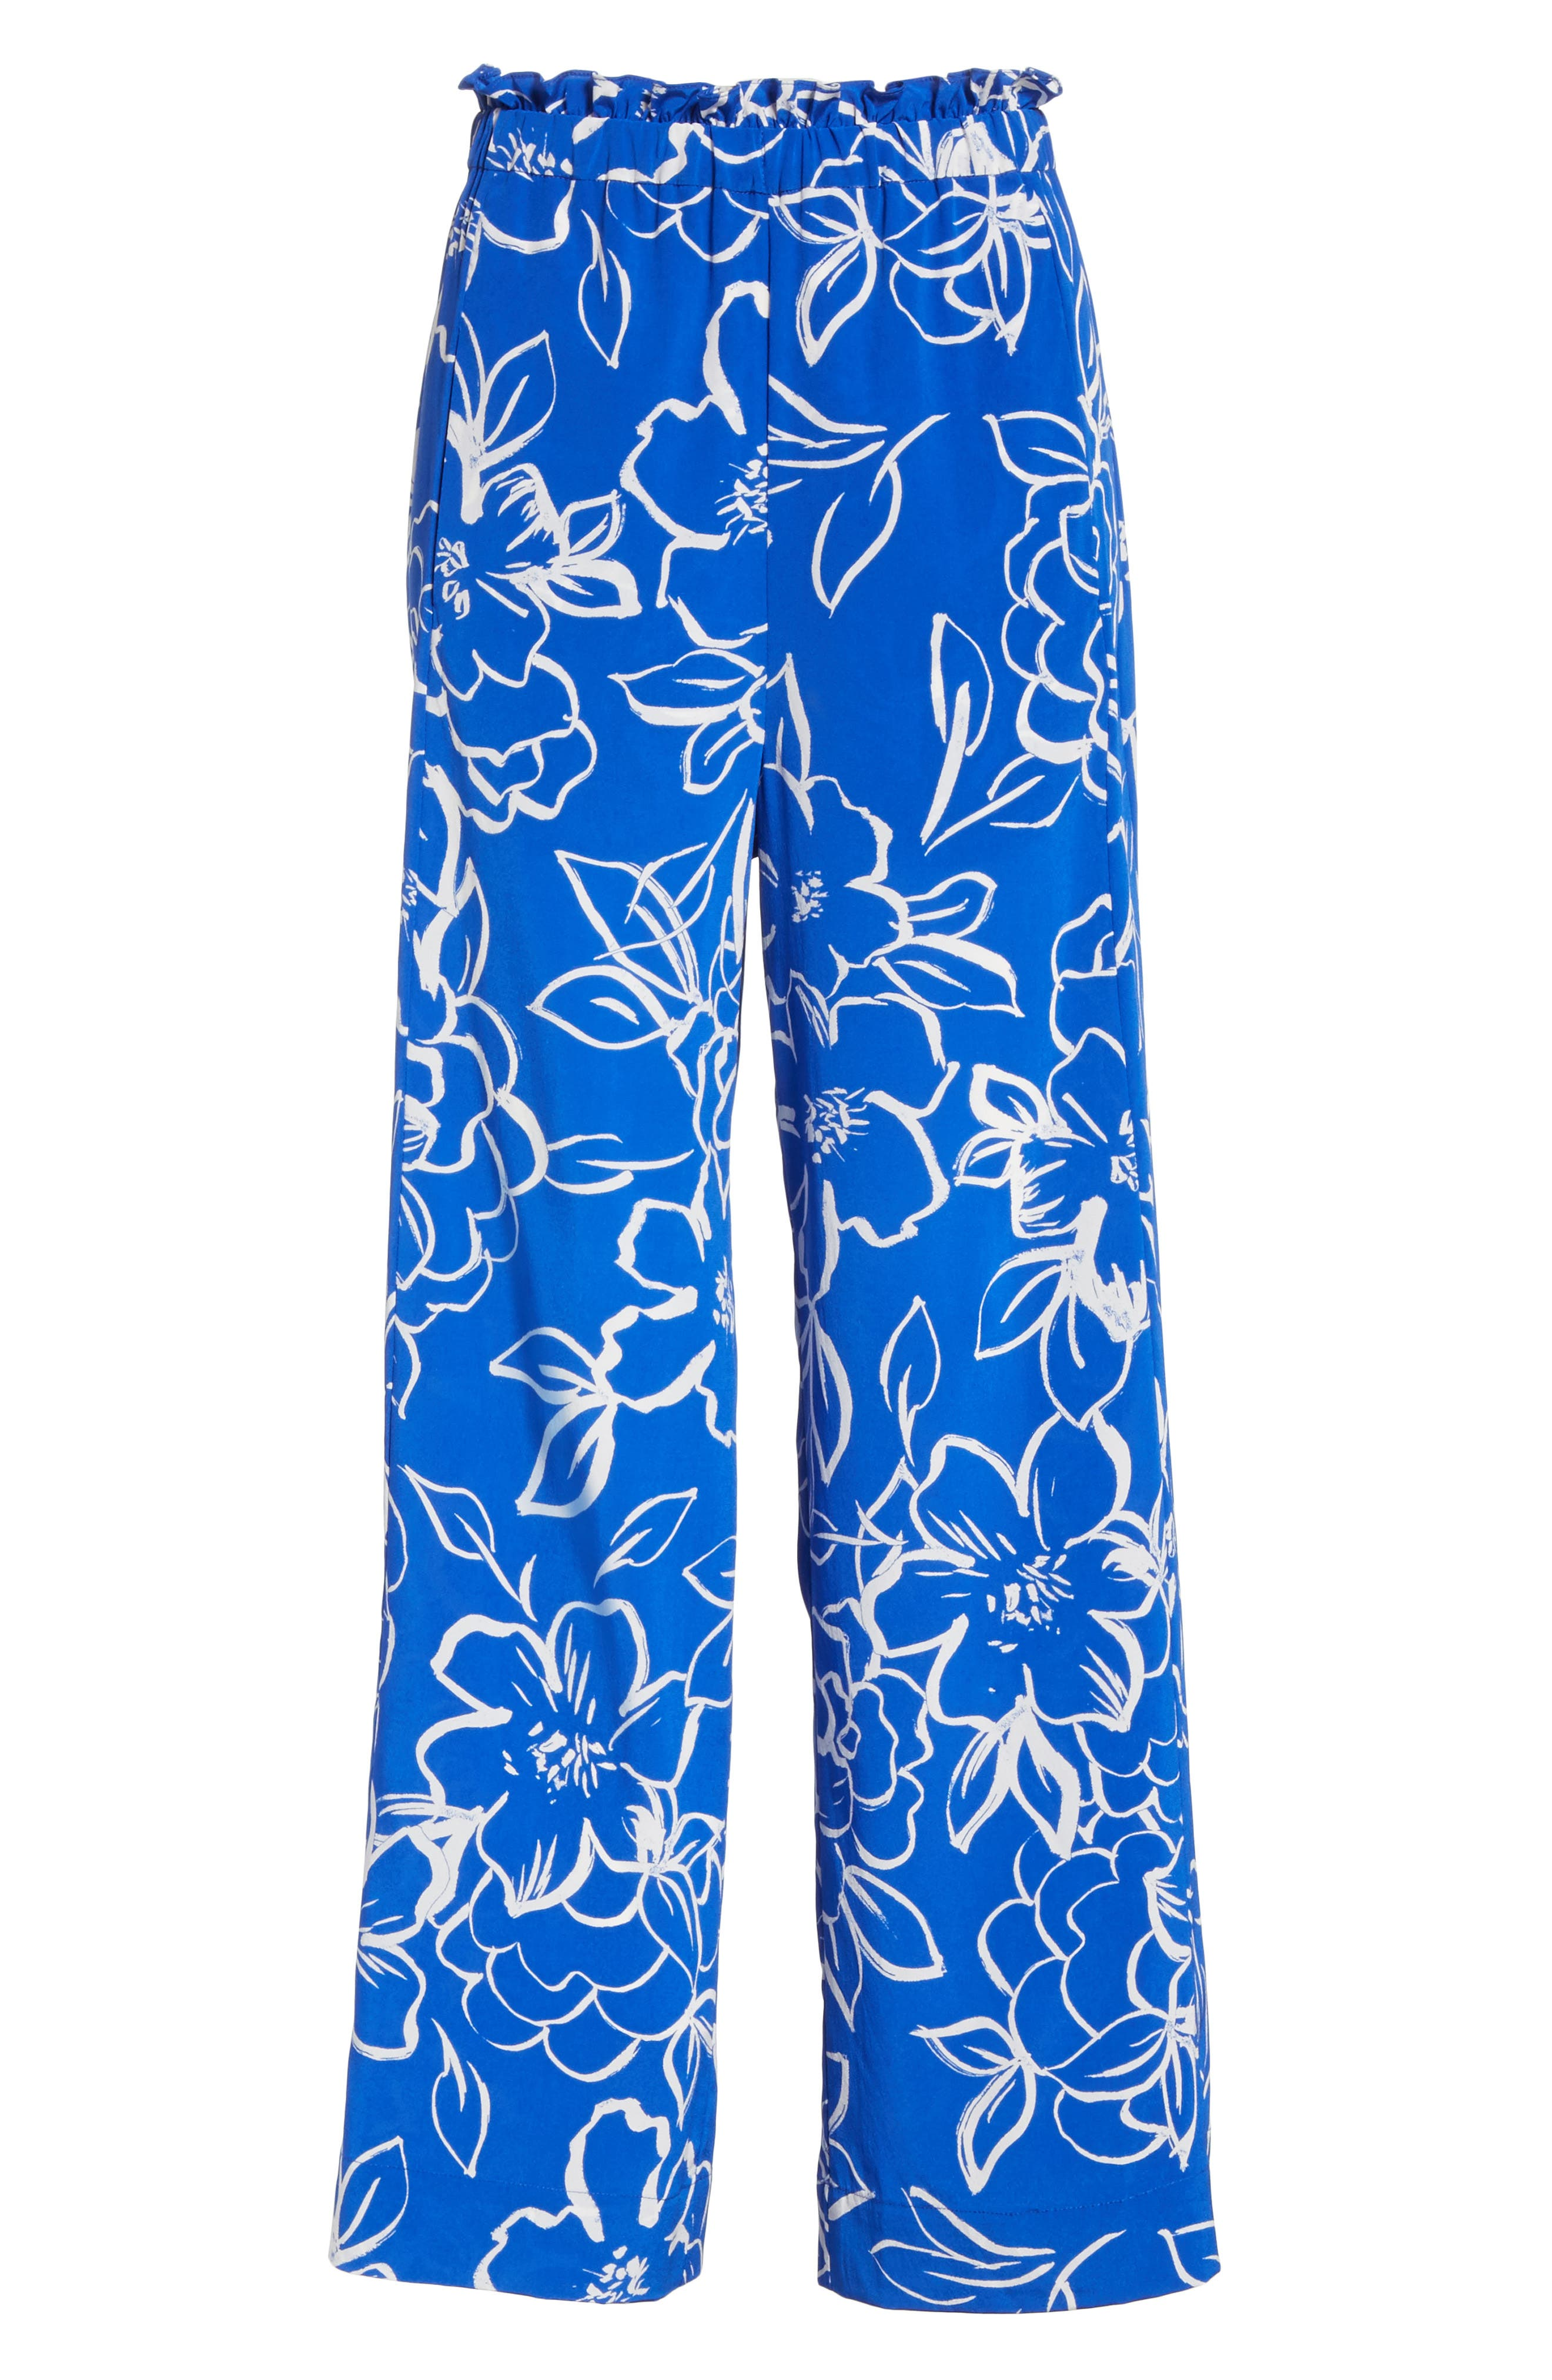 Floral Crop Pants,                             Alternate thumbnail 6, color,                             406